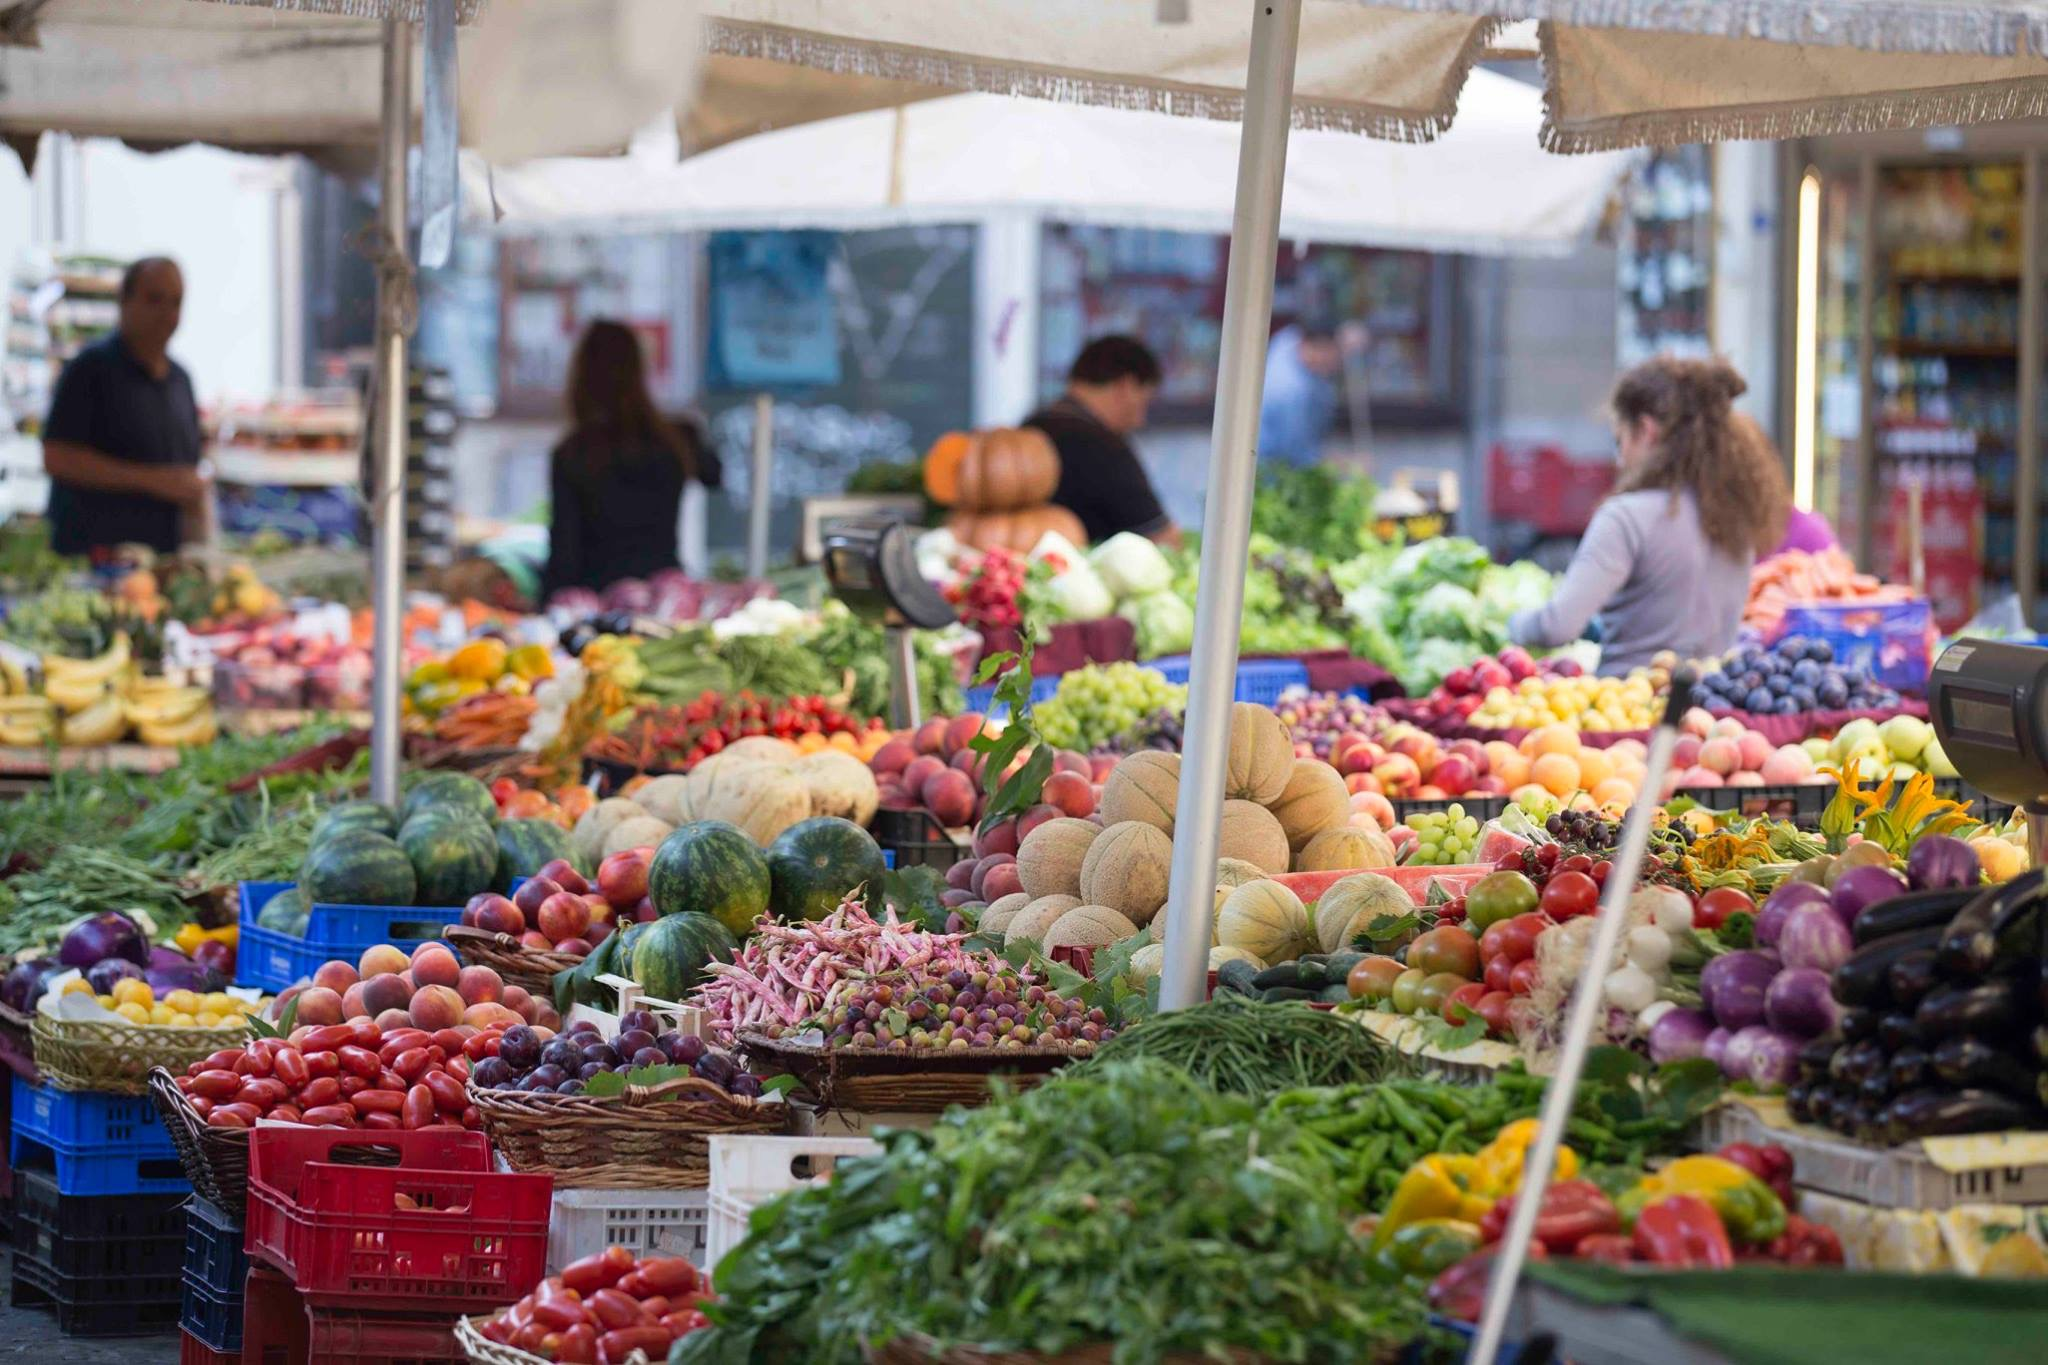 Rome: Local market visit & cooking experience